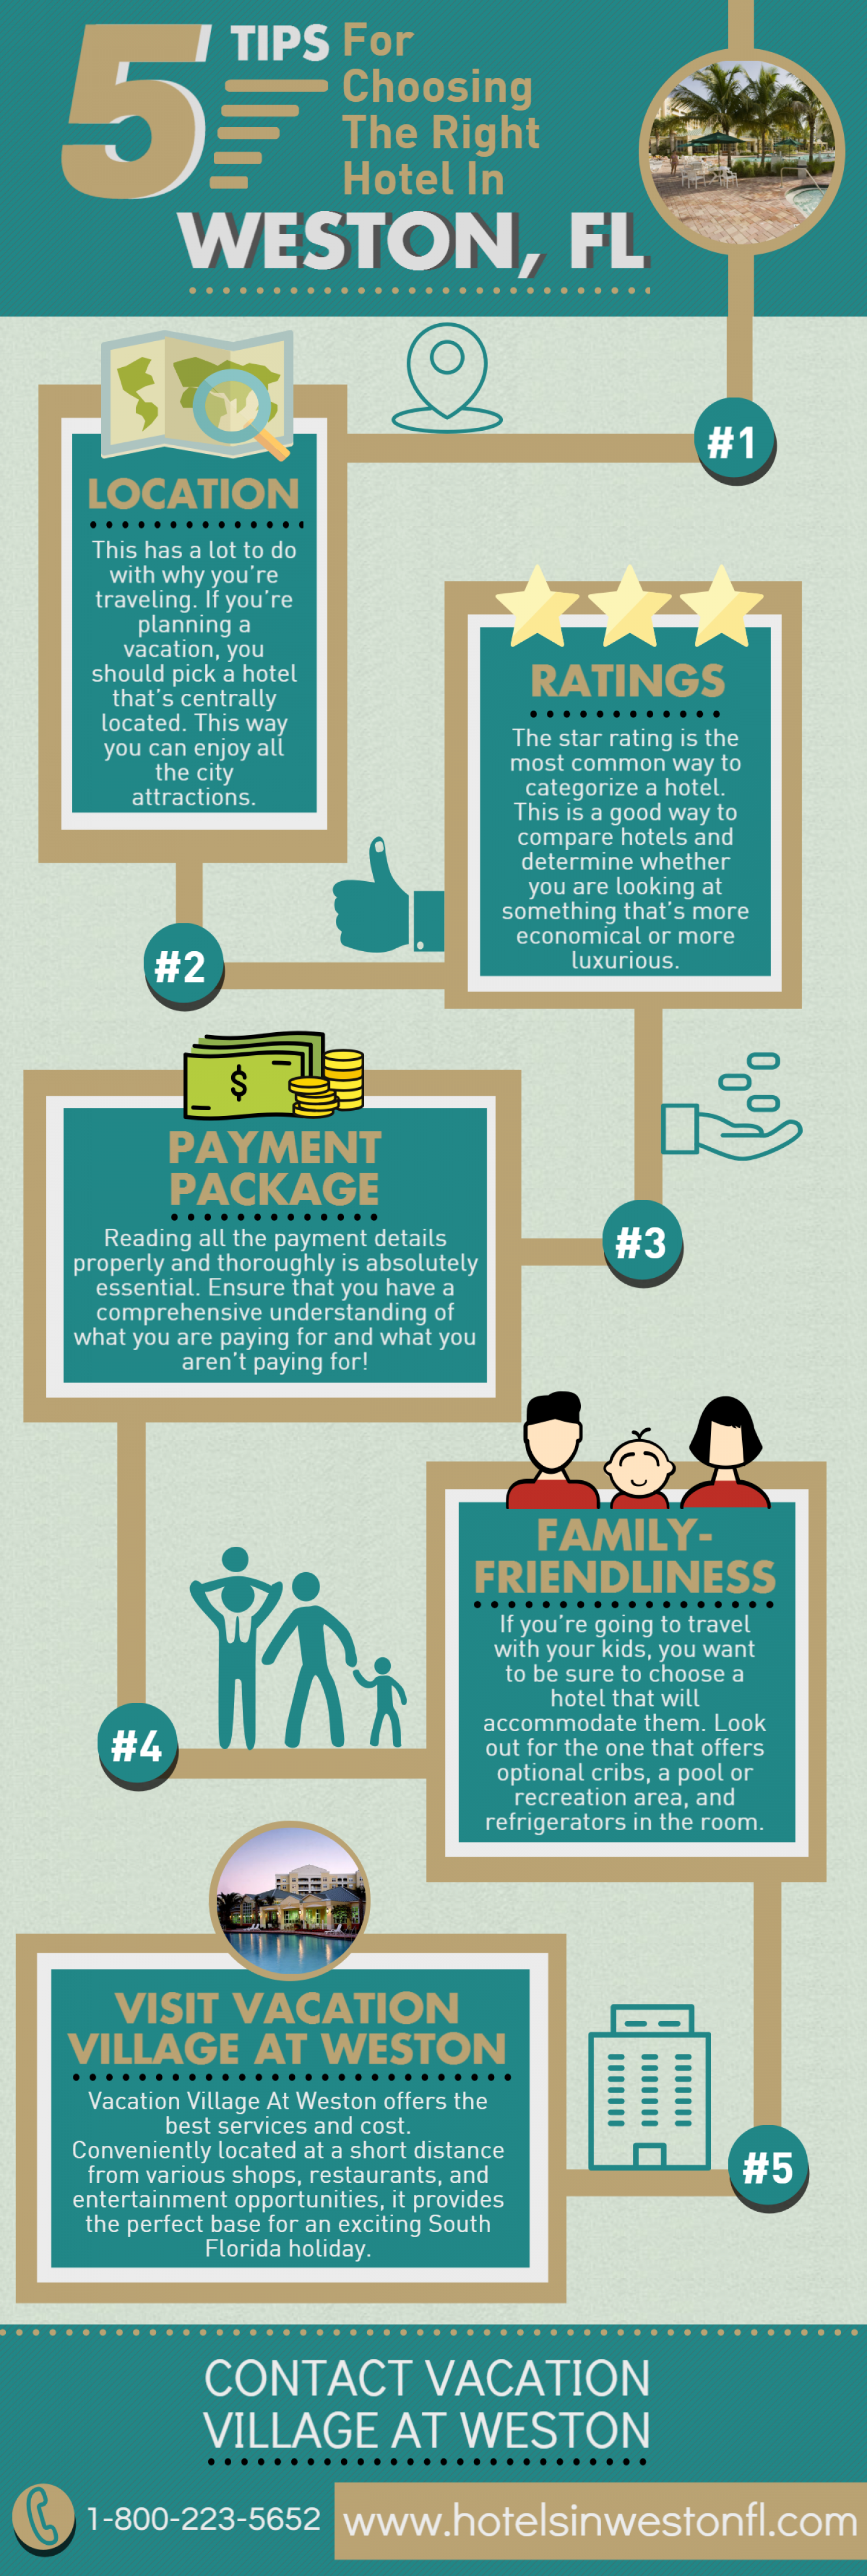 5 Tips for choosing the right hotel in weston, fl Infographic